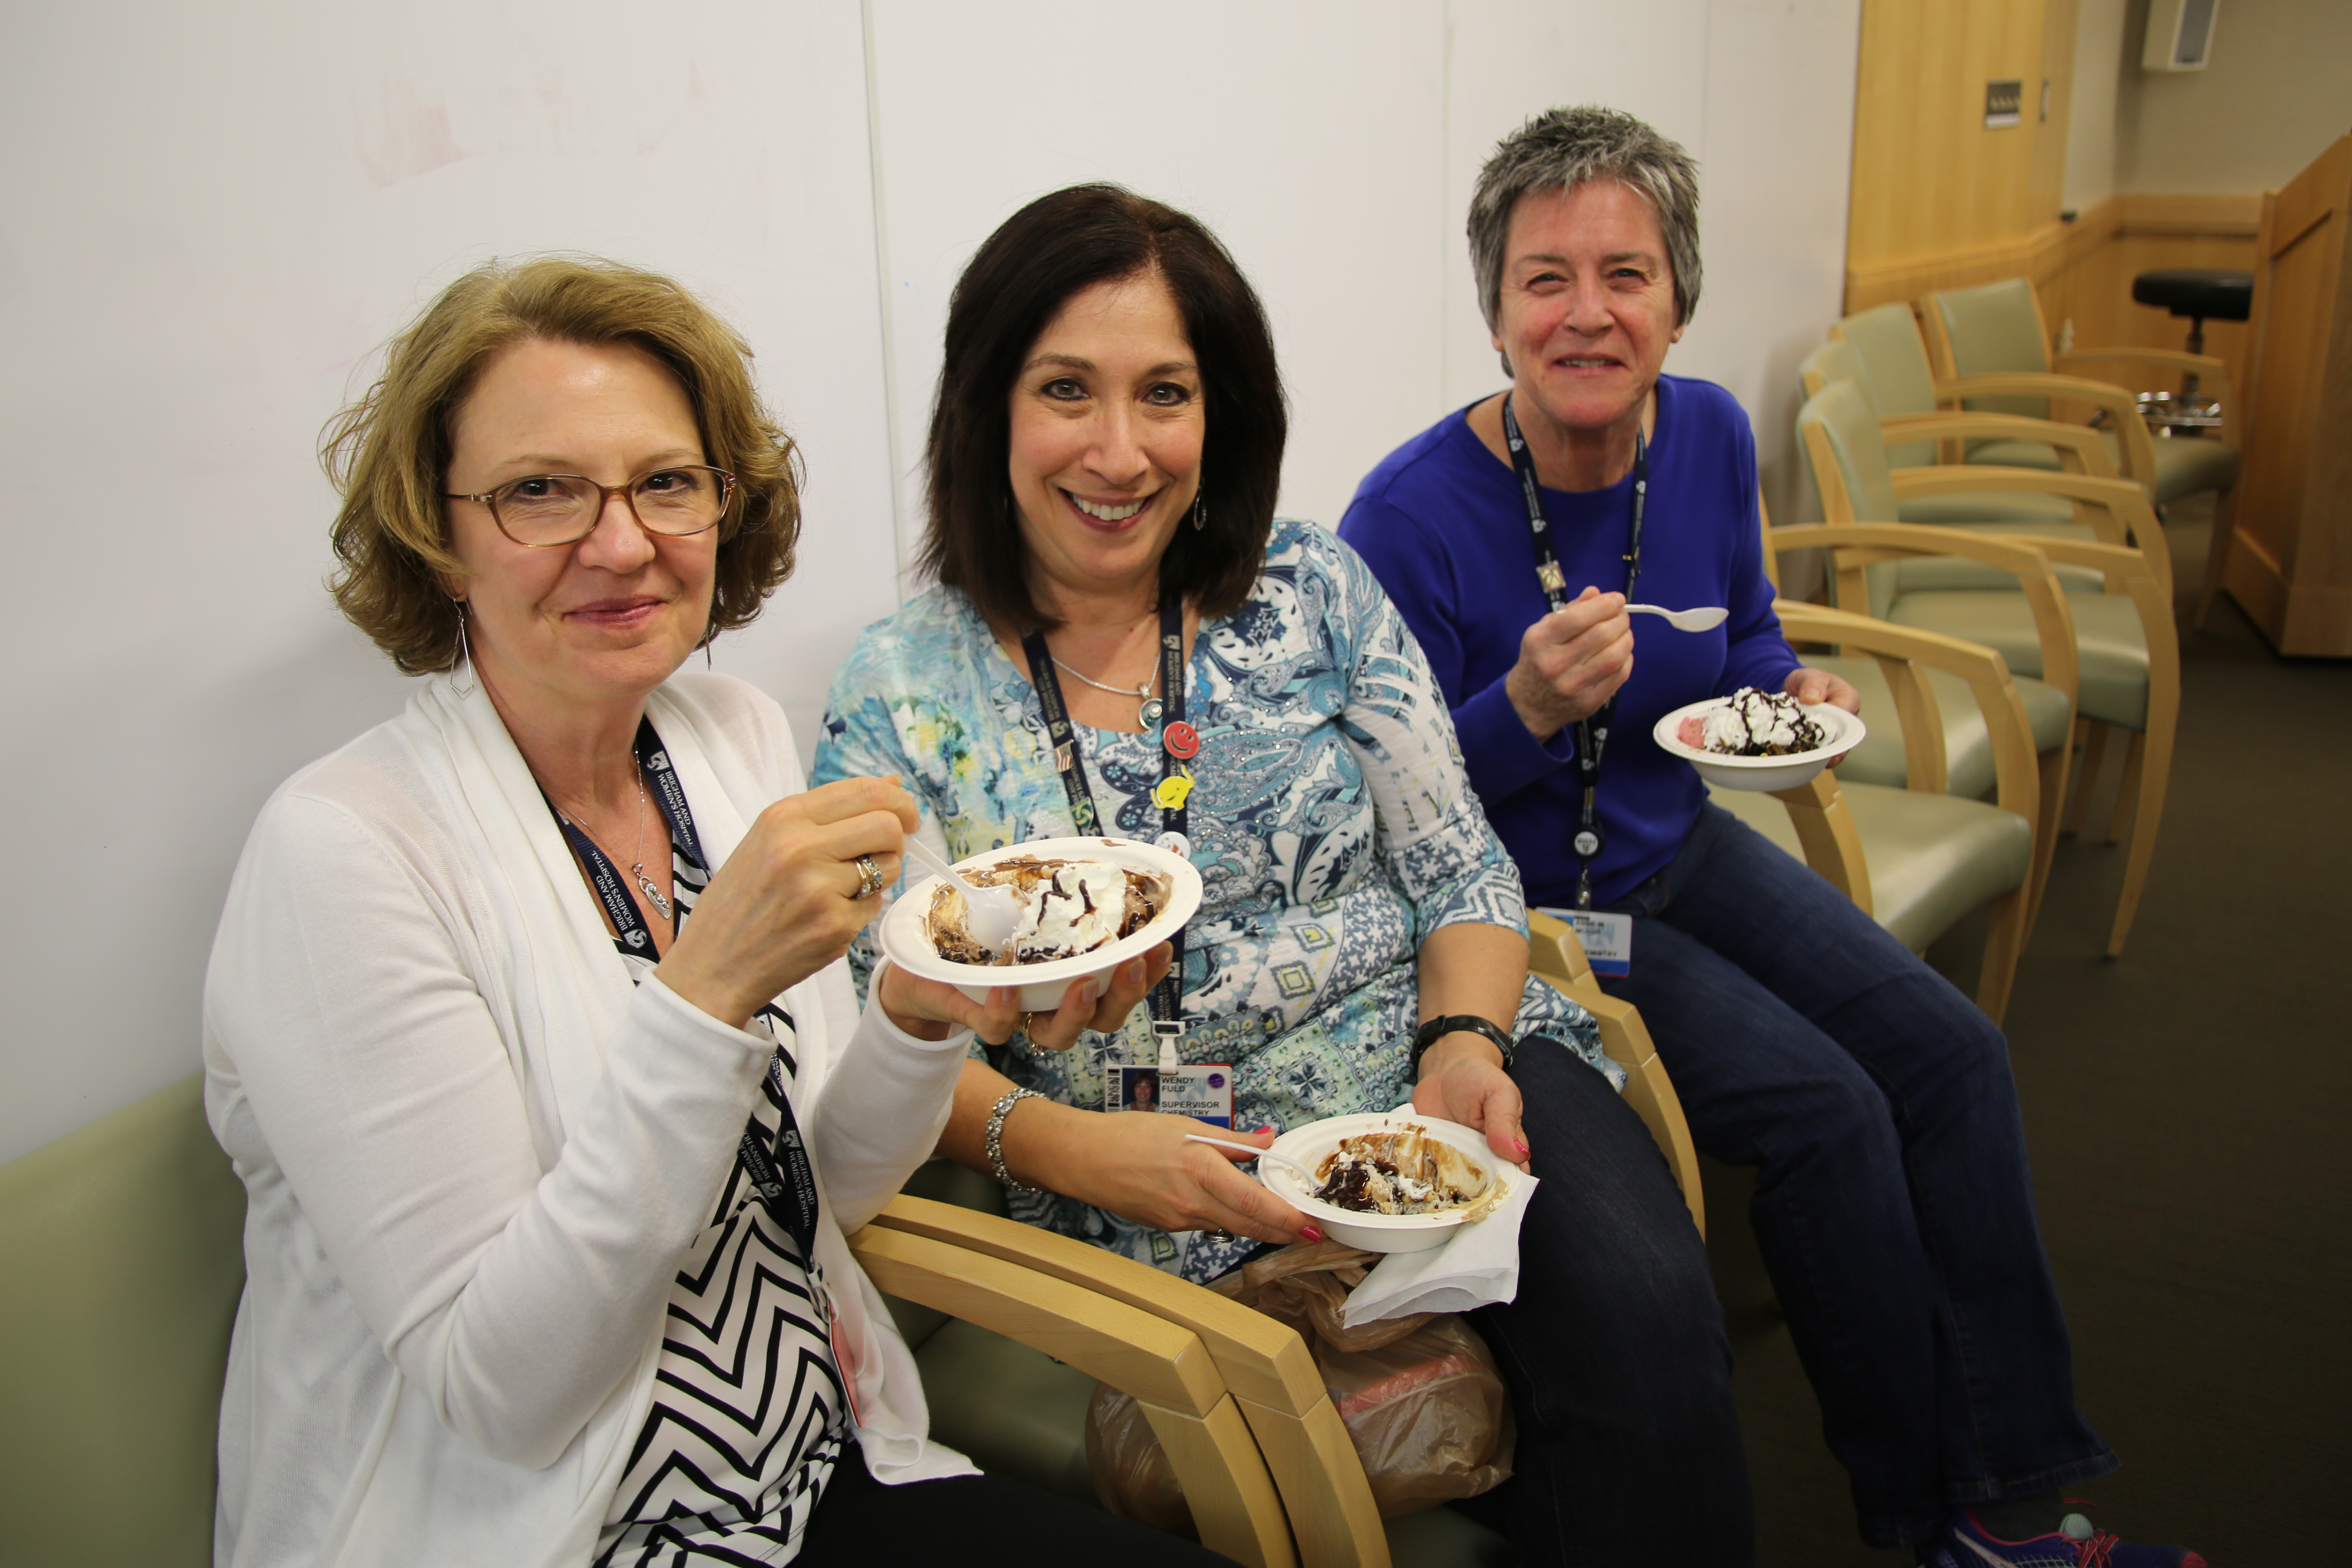 From left: Marcia Niland, Wendy Fuld and Anne McCue at an ice-cream social